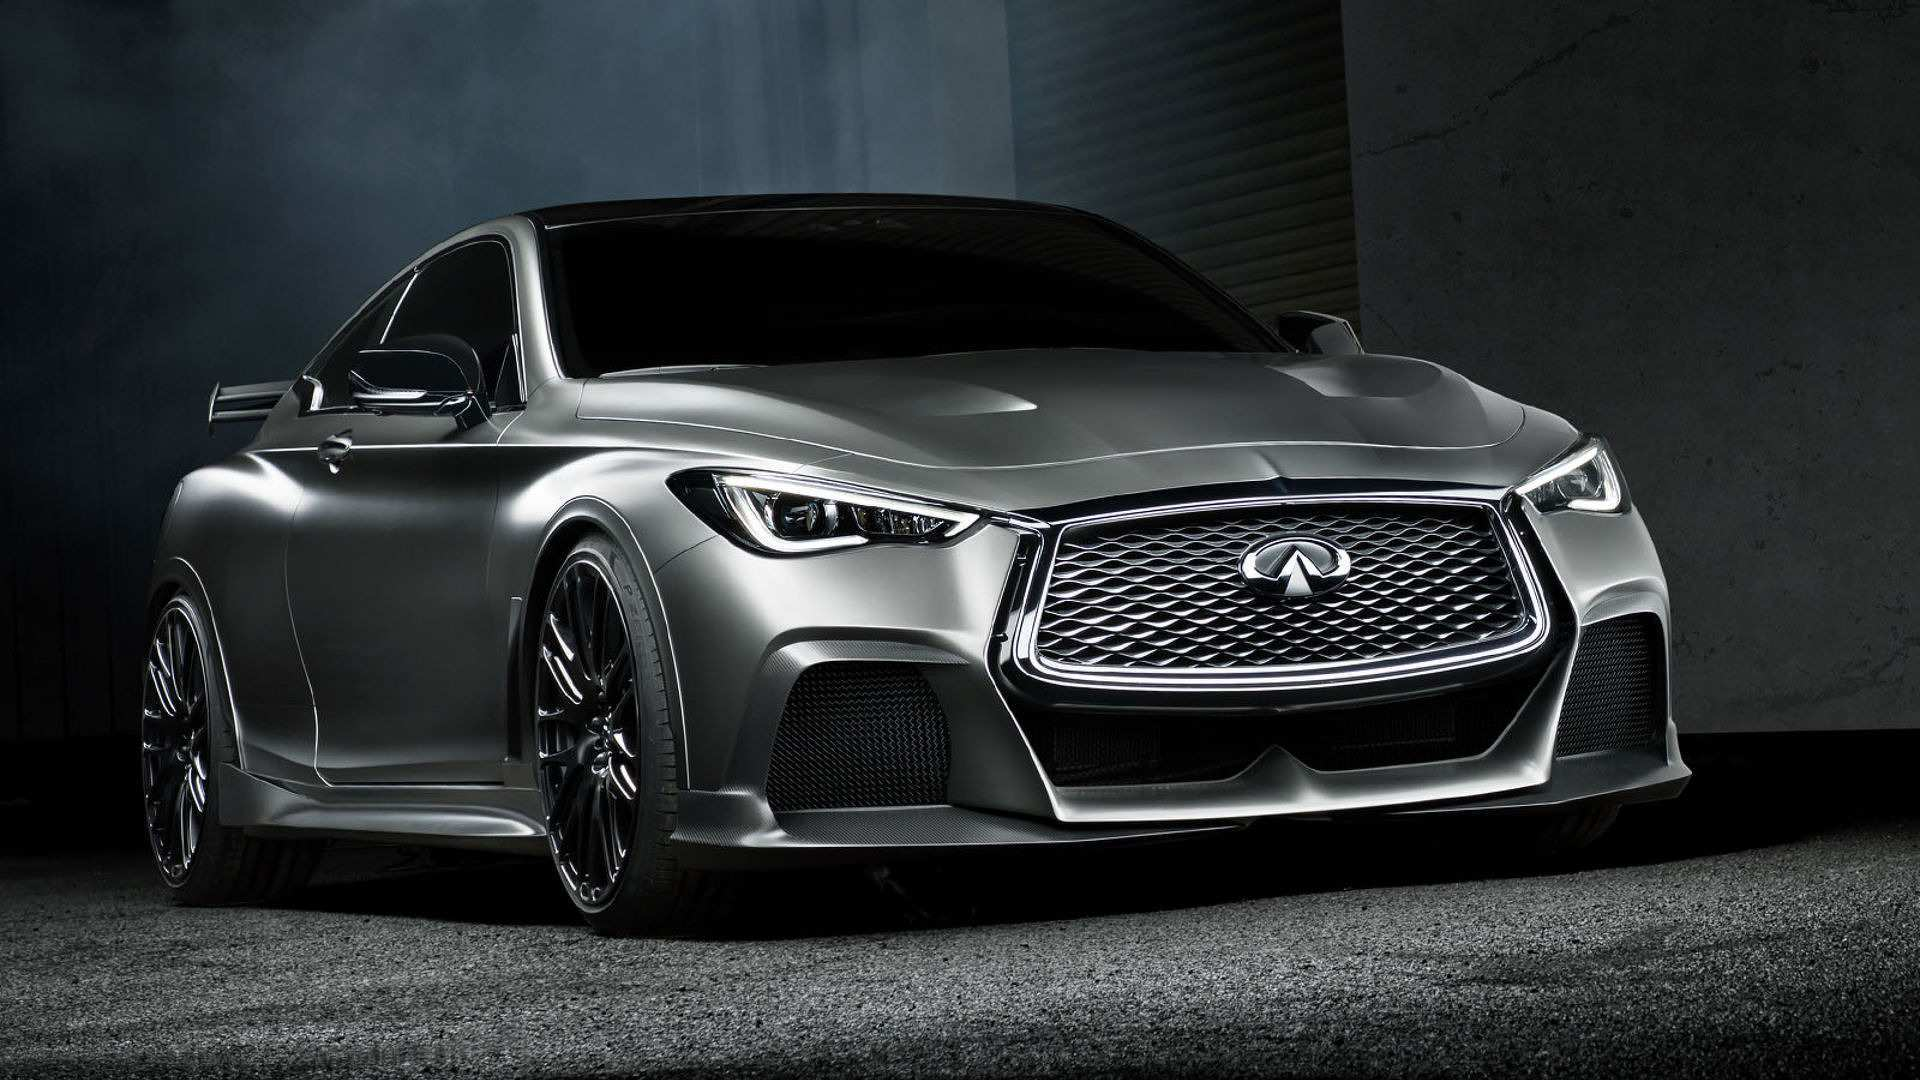 56 Concept of Infiniti Q60 2020 Interior with Infiniti Q60 2020